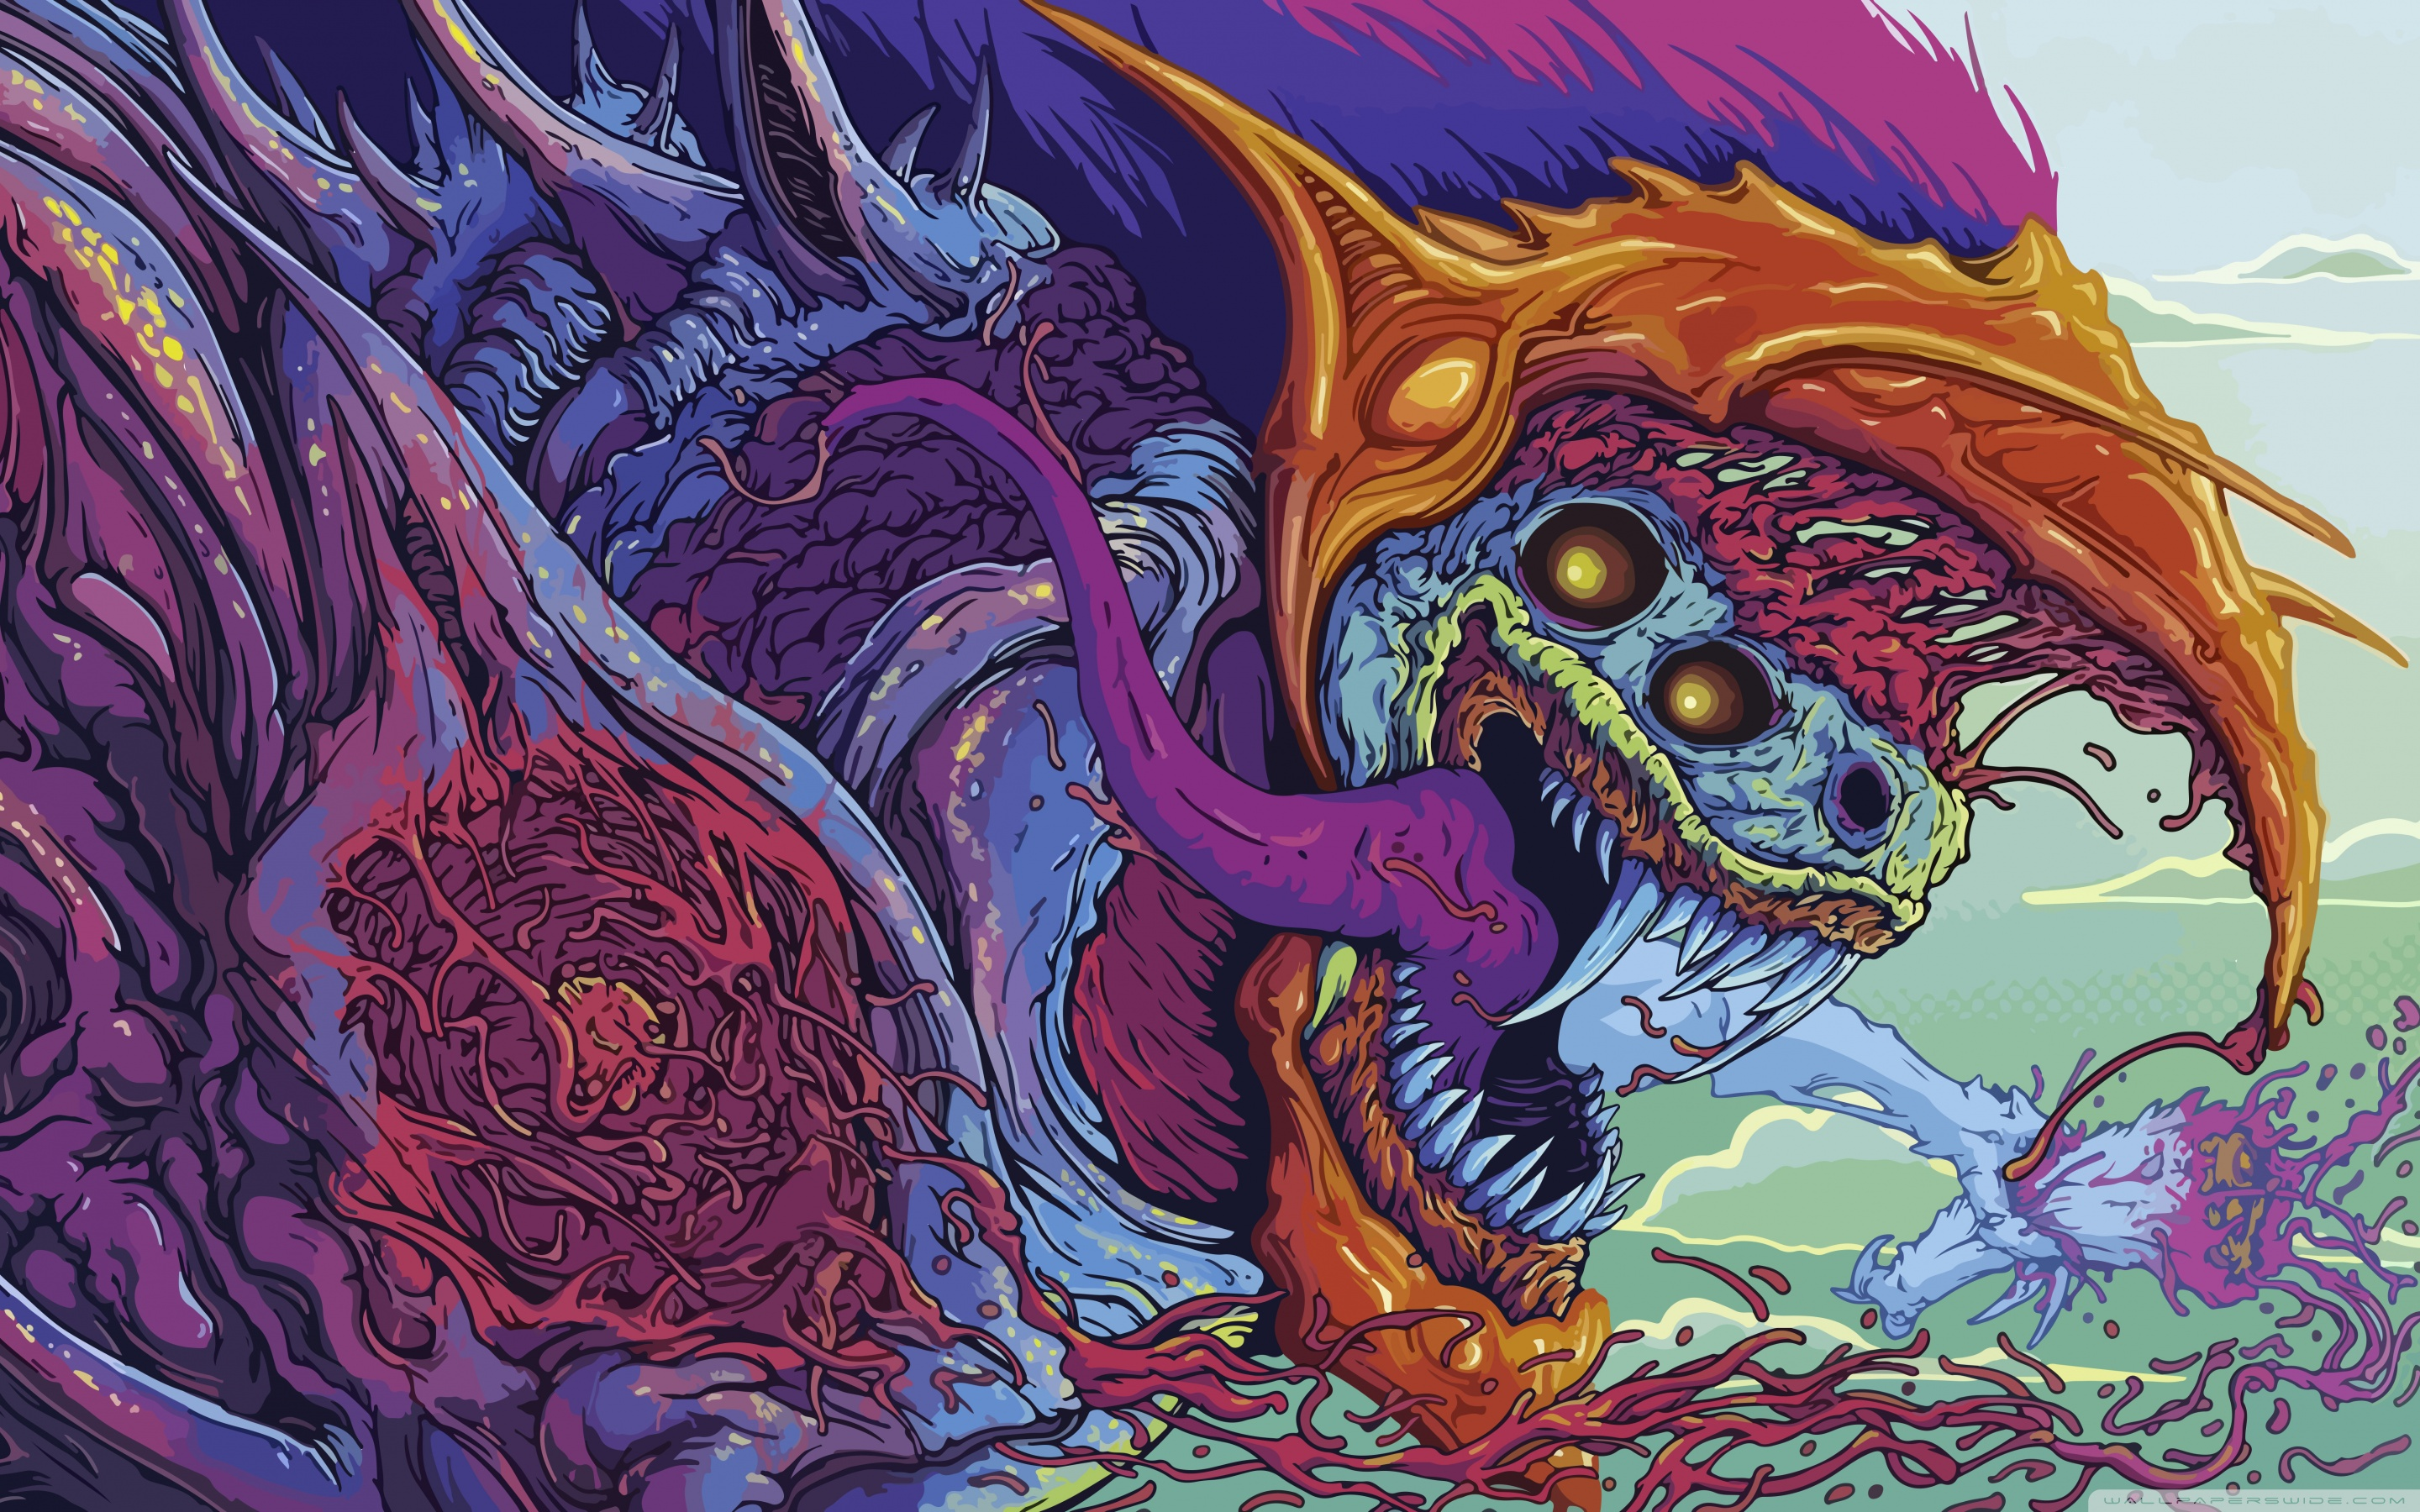 Great Wallpaper Macbook Psychedelic - hyper_beast-wallpaper-2880x1800  You Should Have_25917.jpg